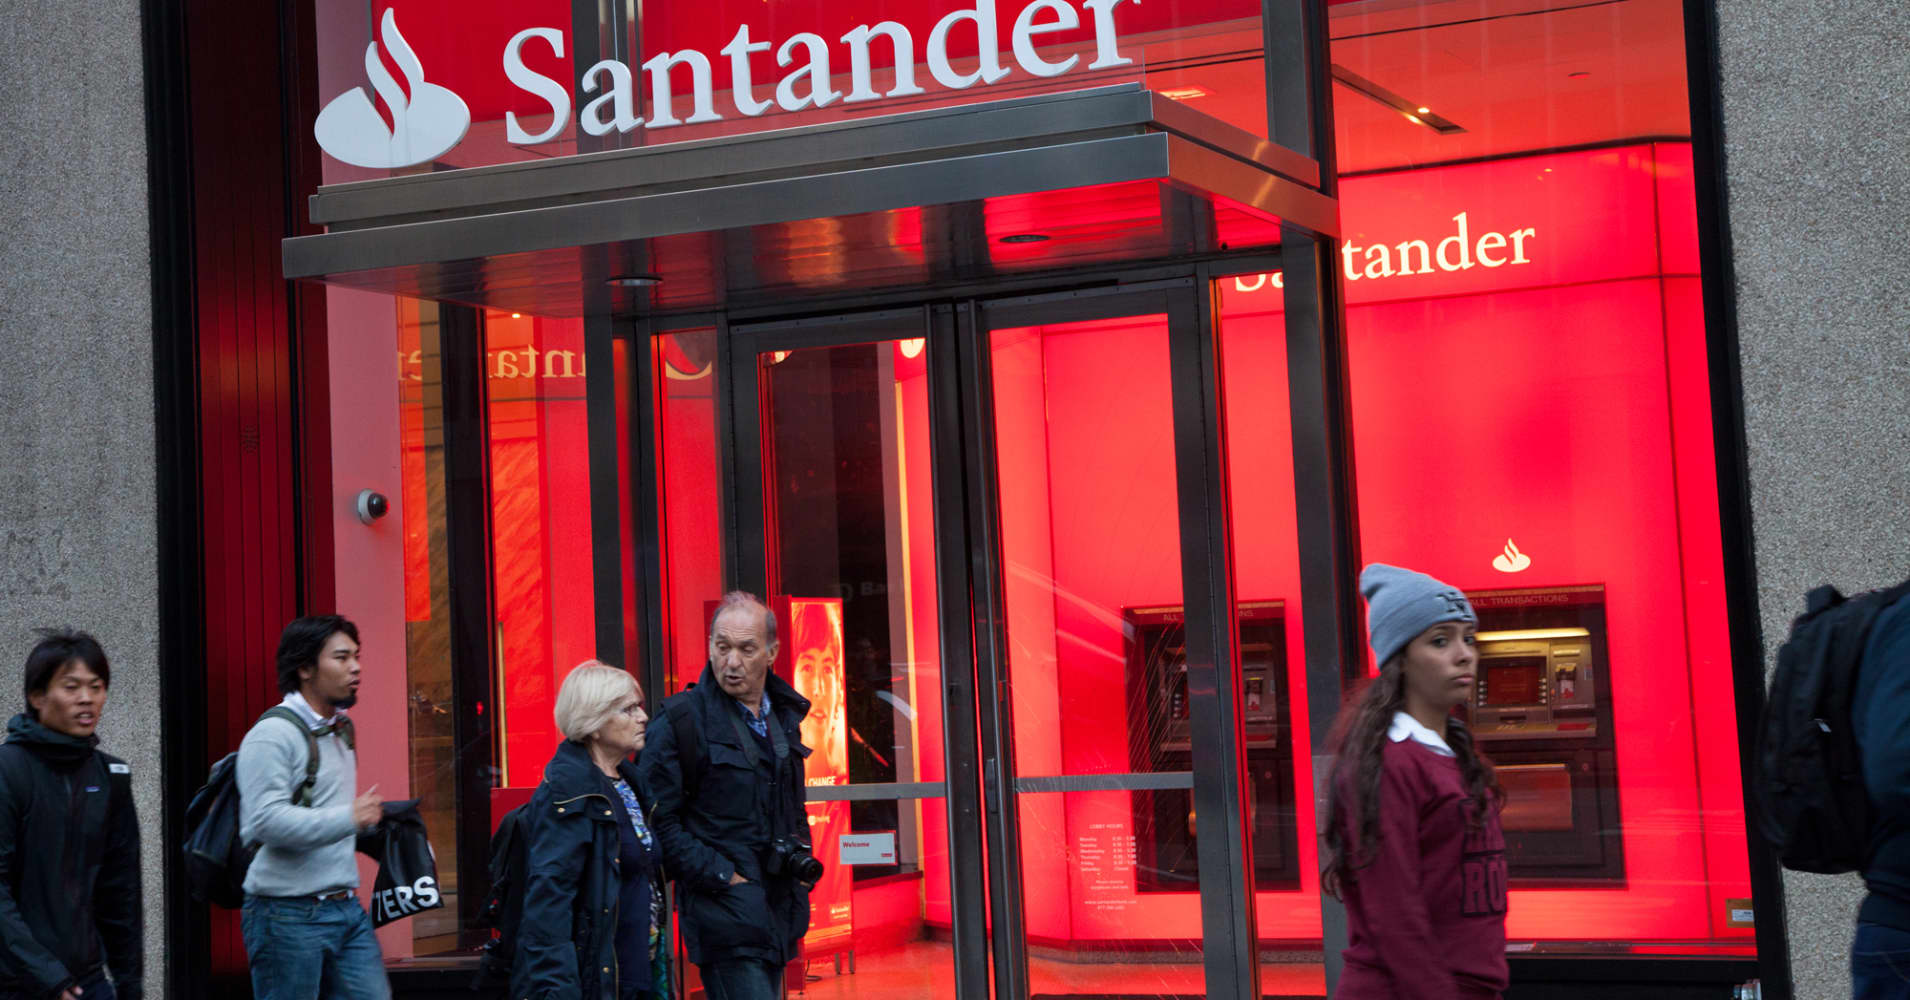 Santander's shock bond move is controversial but not contagious, analysts say